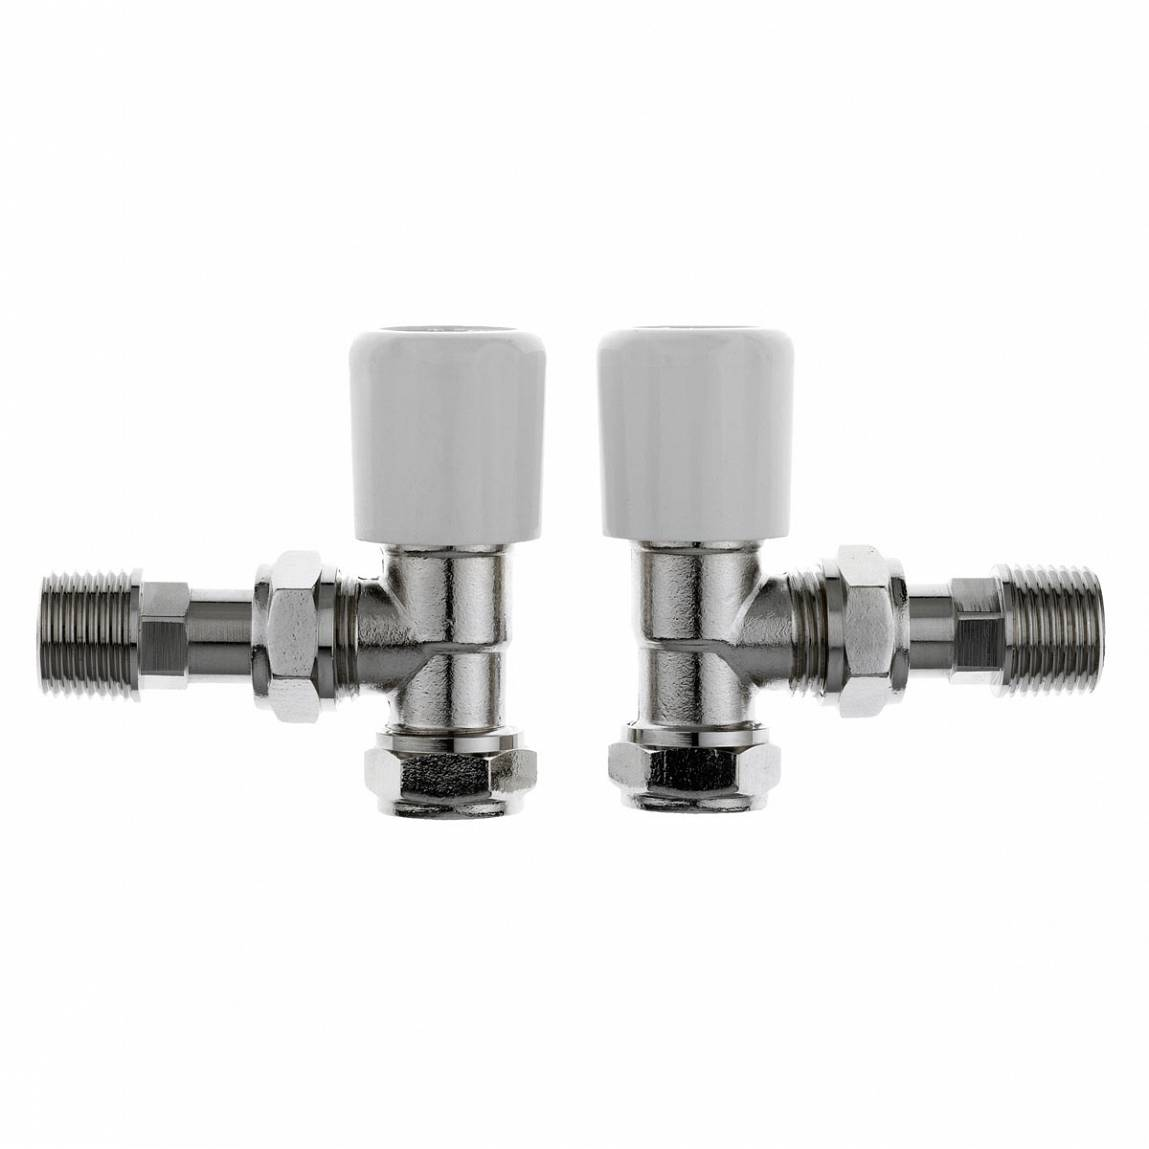 Image of Angled Radiator Valves